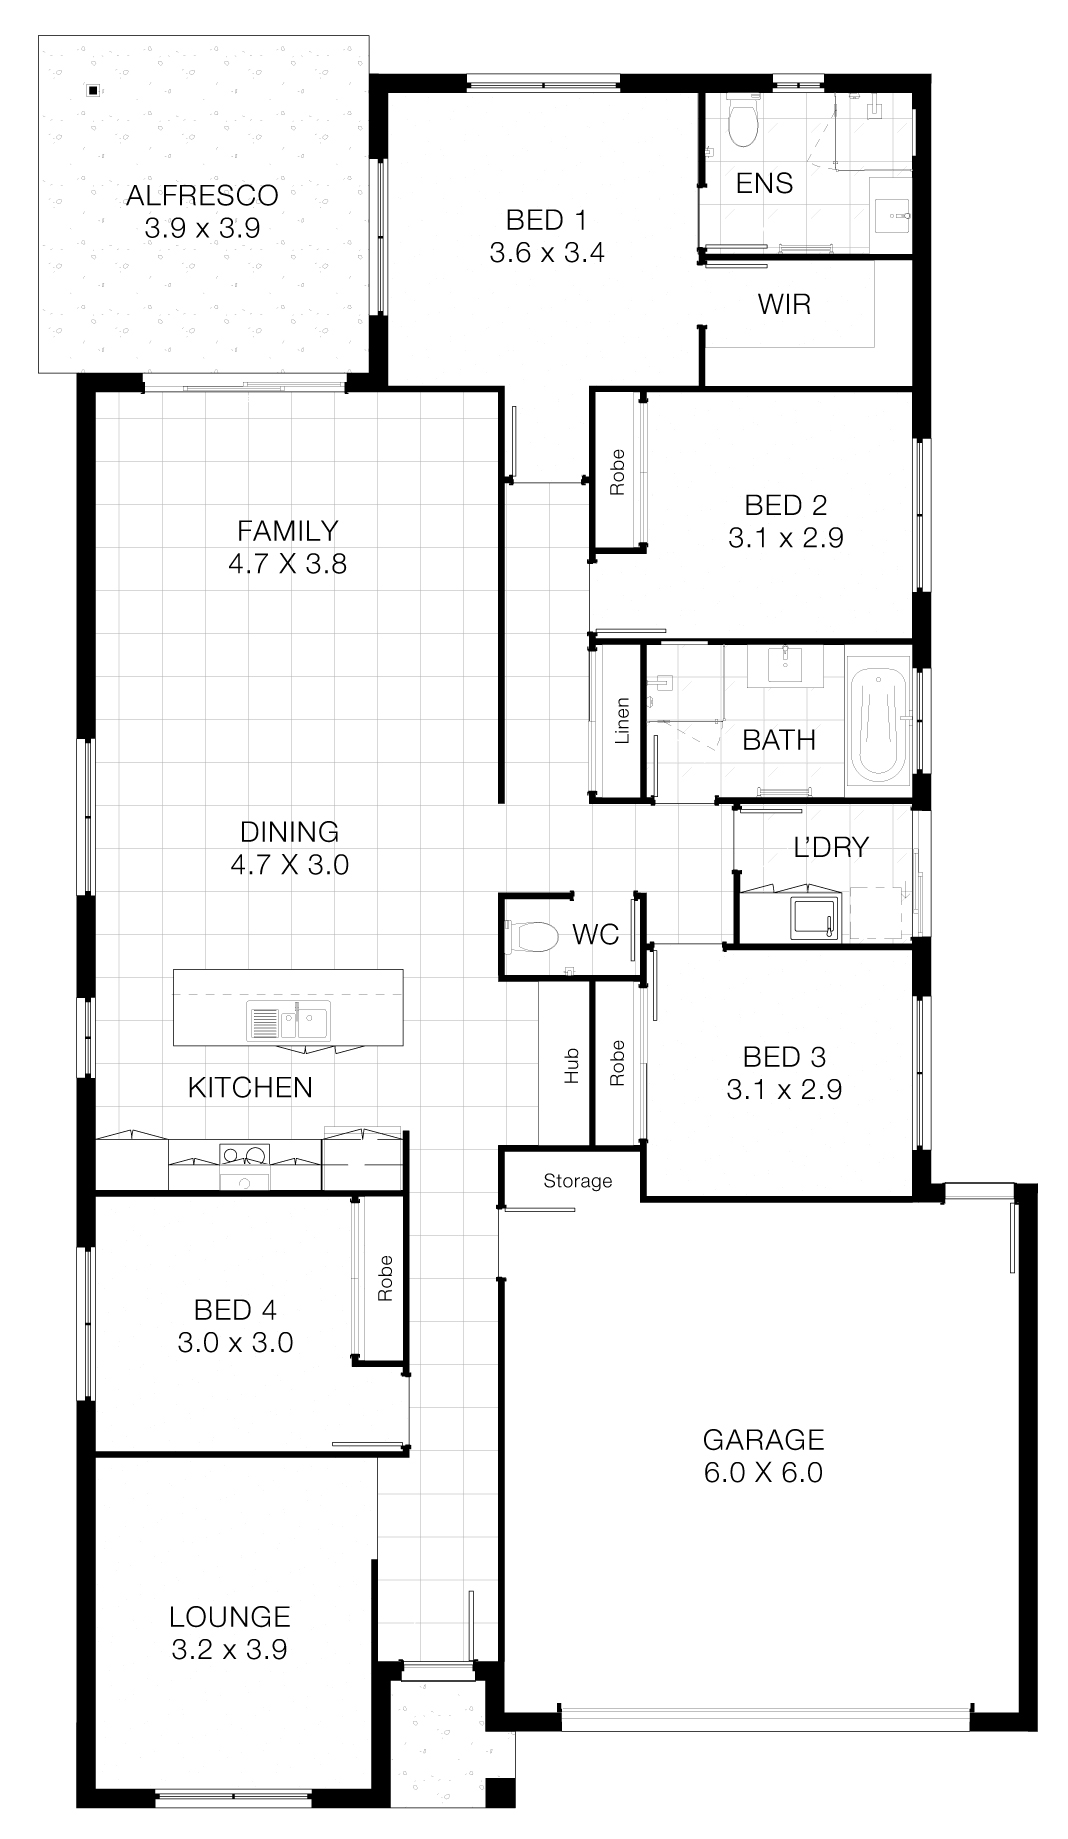 8 M Wide Home Designs Part - 42: Plans And Illustrations Are For Marketing Purposes - Dimensions And Colours  Are Provided As A Guide Only. Some Homes May Be Mirror Reversed Versions Of  This ...